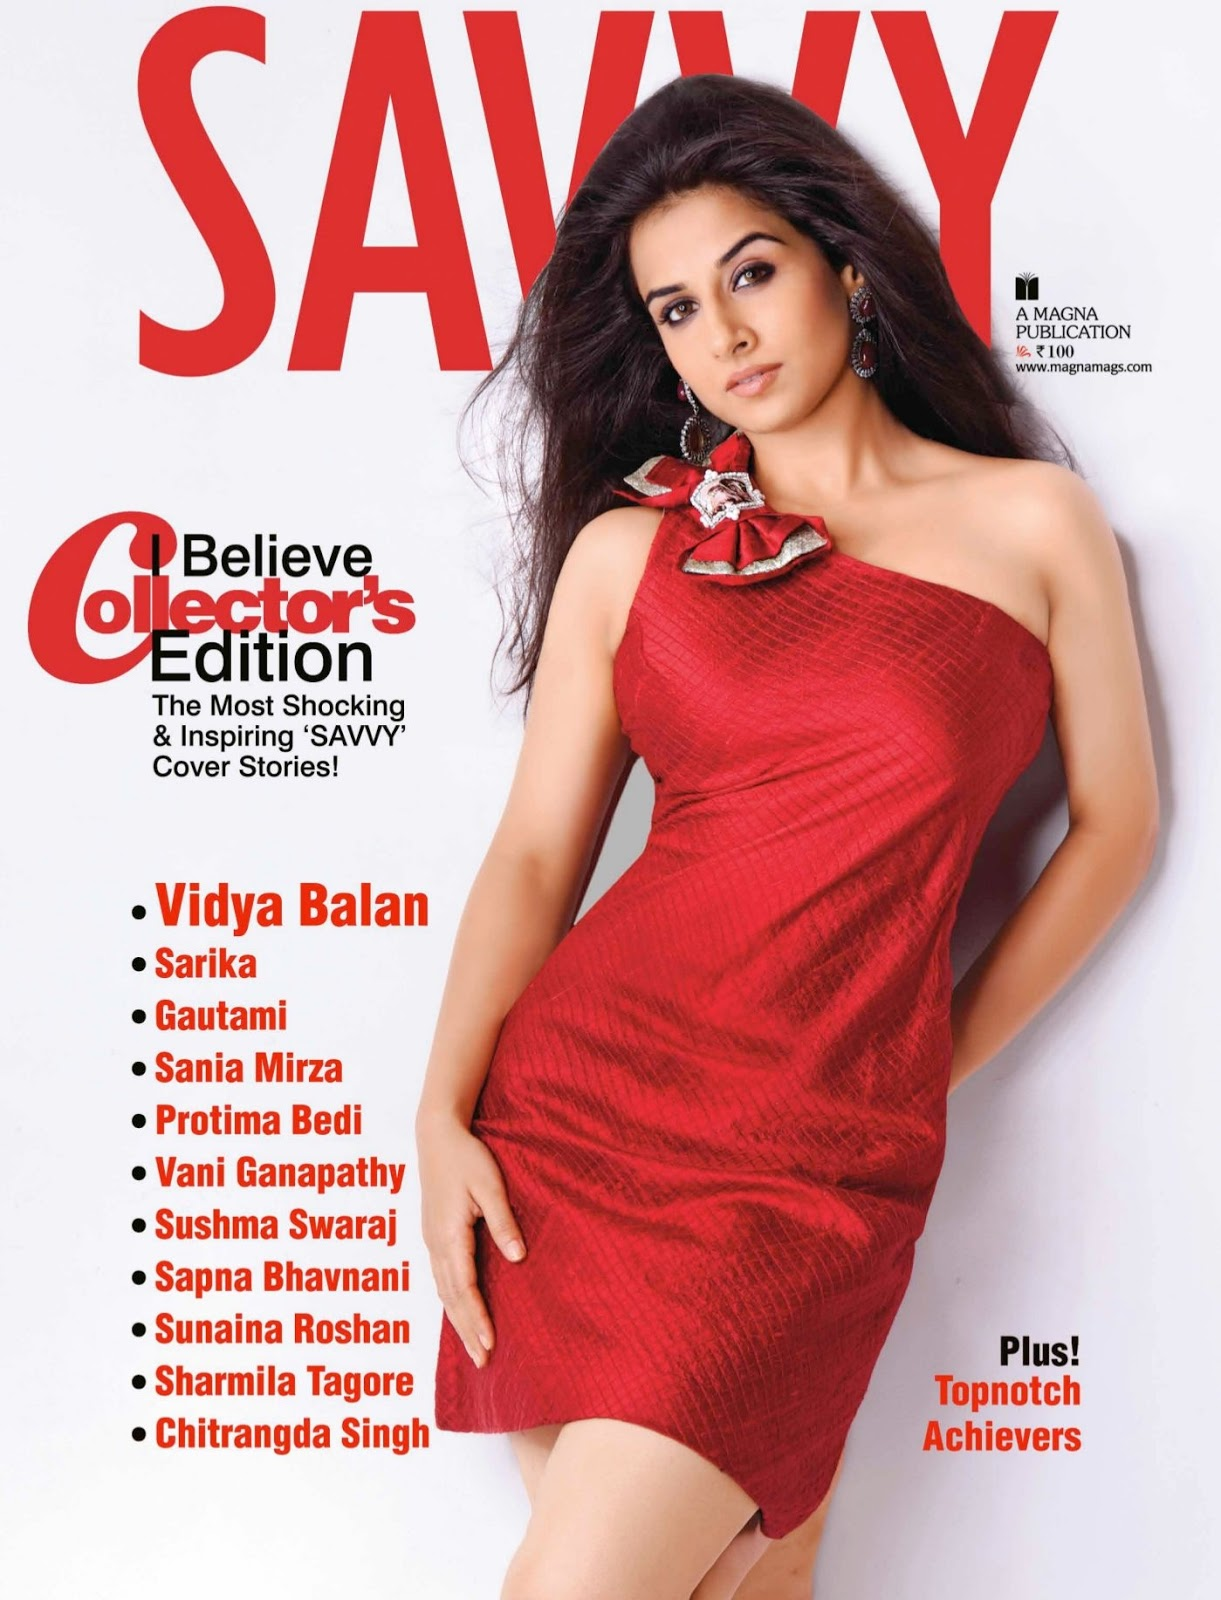 List of Top 10 Best Hot Selling Fashion & Lifestyles Indian Magazines (9)